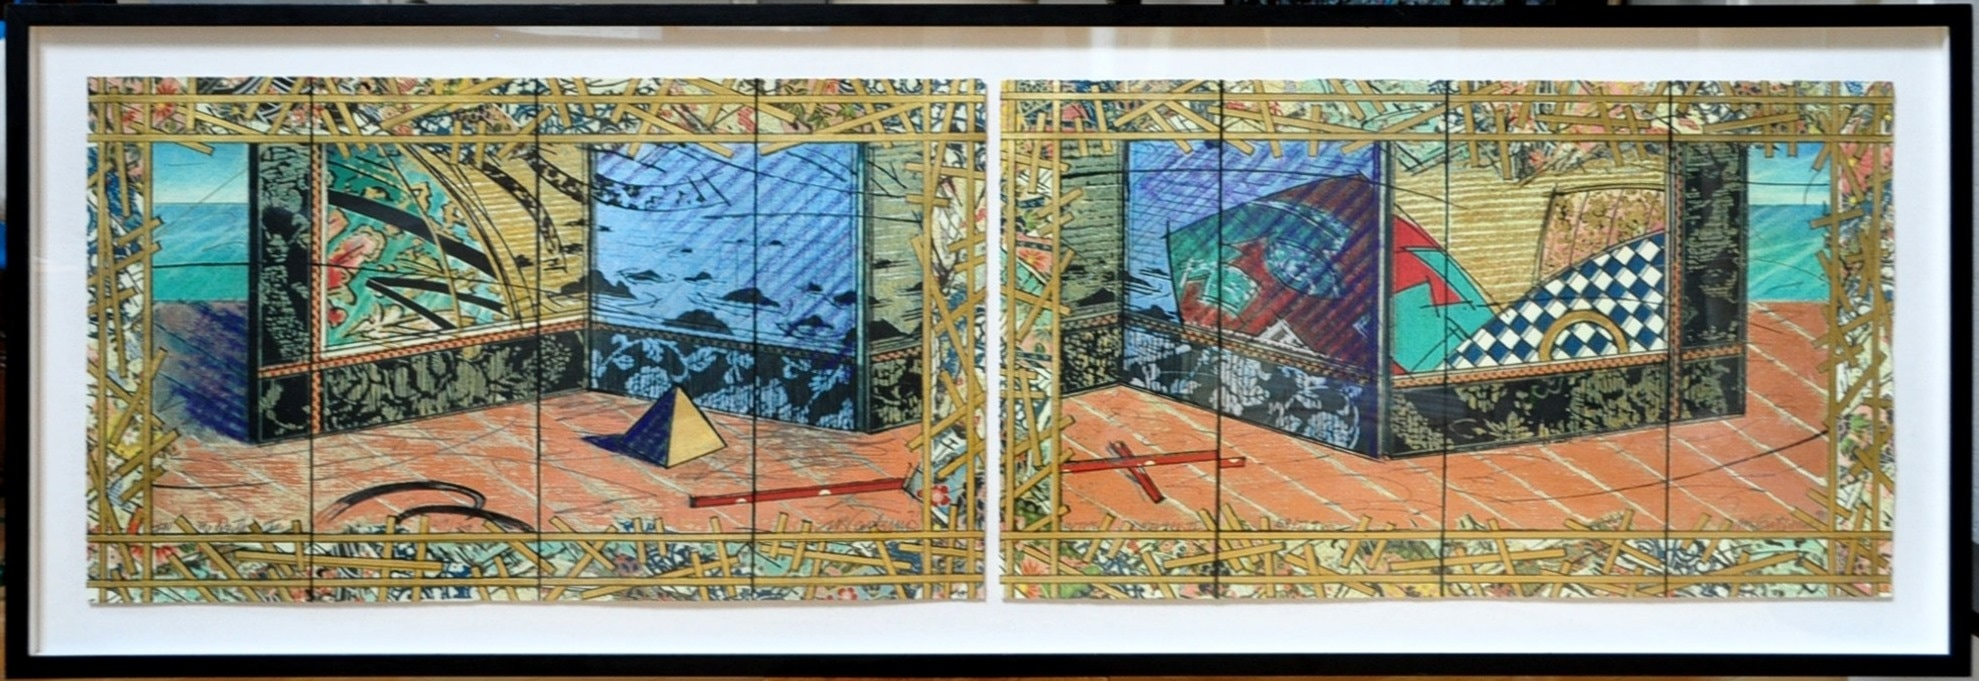 Pair of limited edition mixed media serigraphs with gold leaf titled In the North I & II by William Gatewood